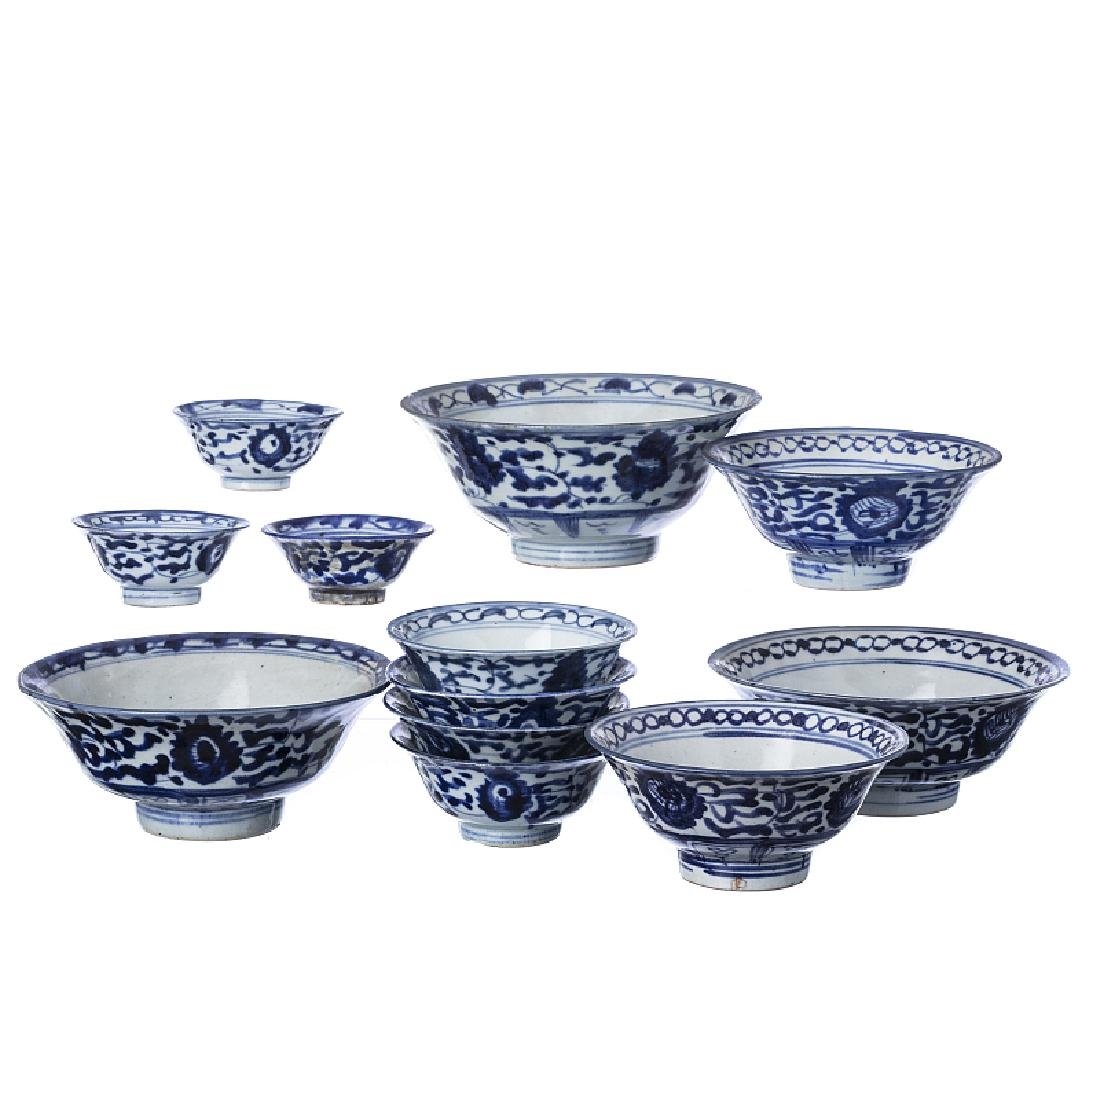 33 piece serving set in Chinese porcelain